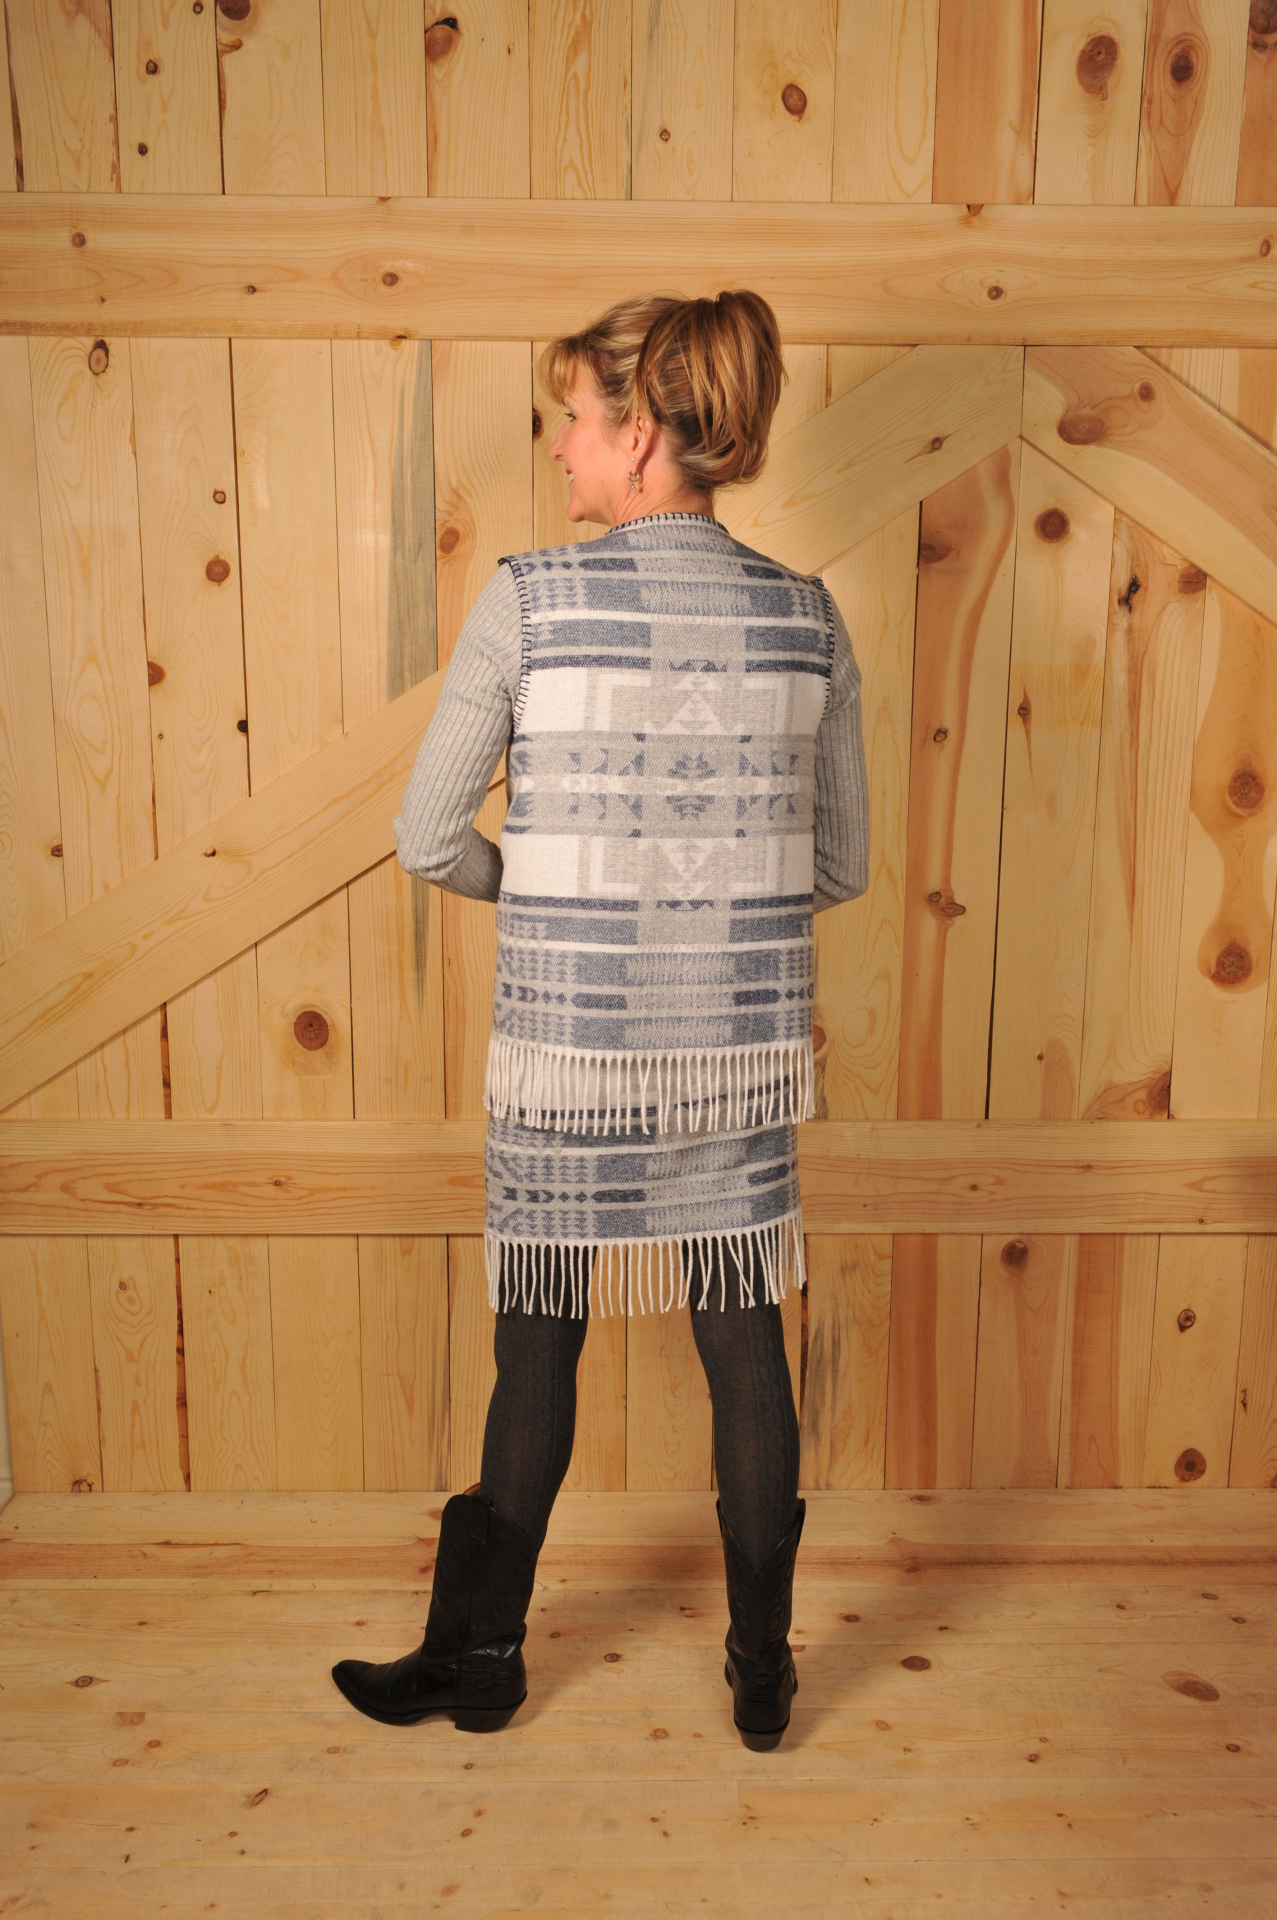 #121IVF - INDIGO VALLEY FRINGE V-VEST - SALE $37.48 -- SMALL ONLY!